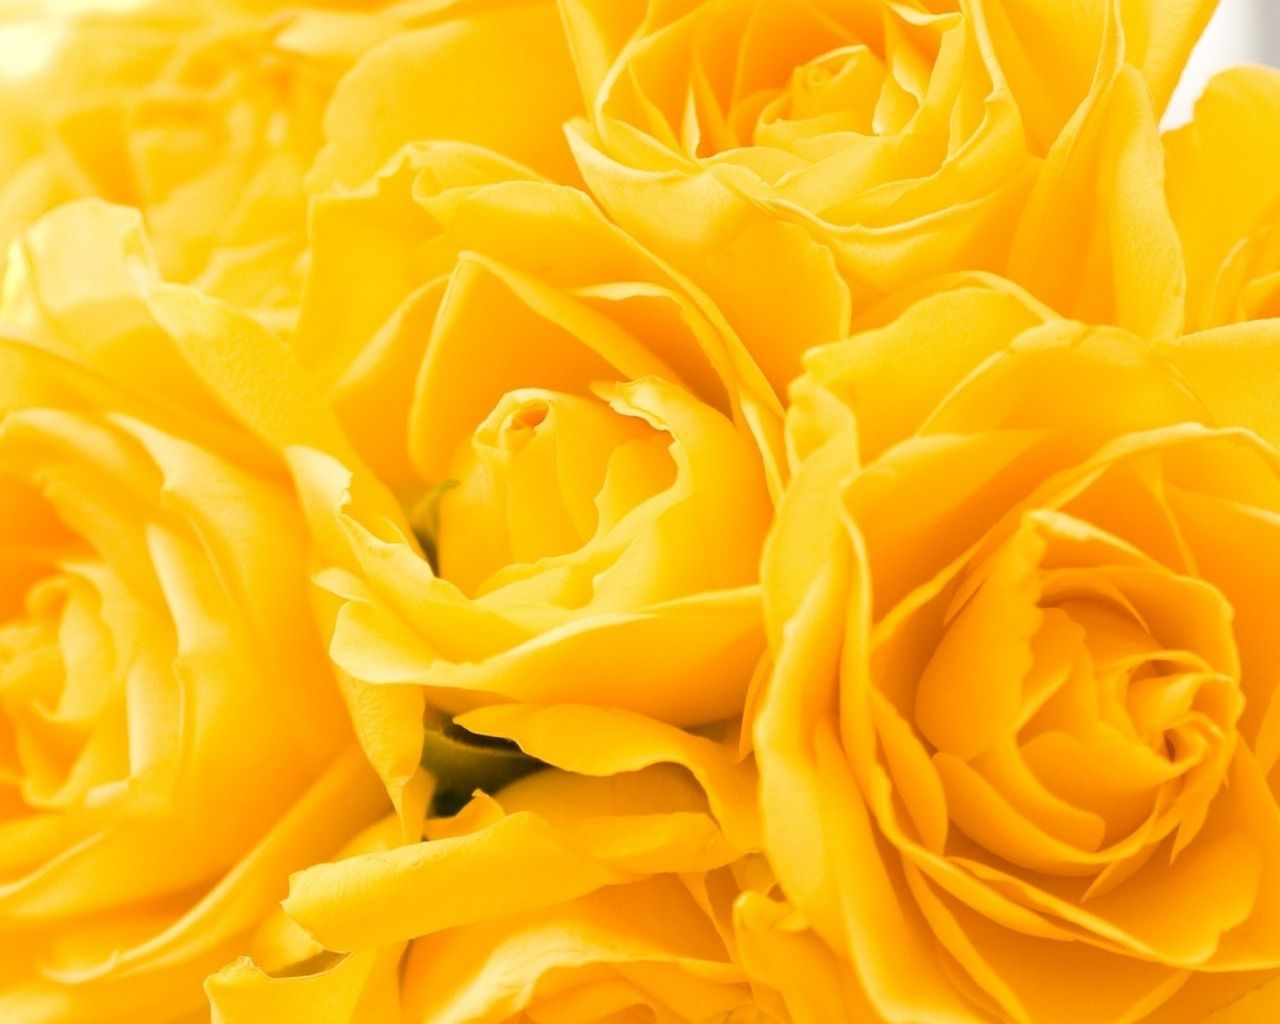 Yellow roses flower yellow roses beauty flowers rose roses yellow roses flower yellow roses beauty flowers rose roses yellow izmirmasajfo